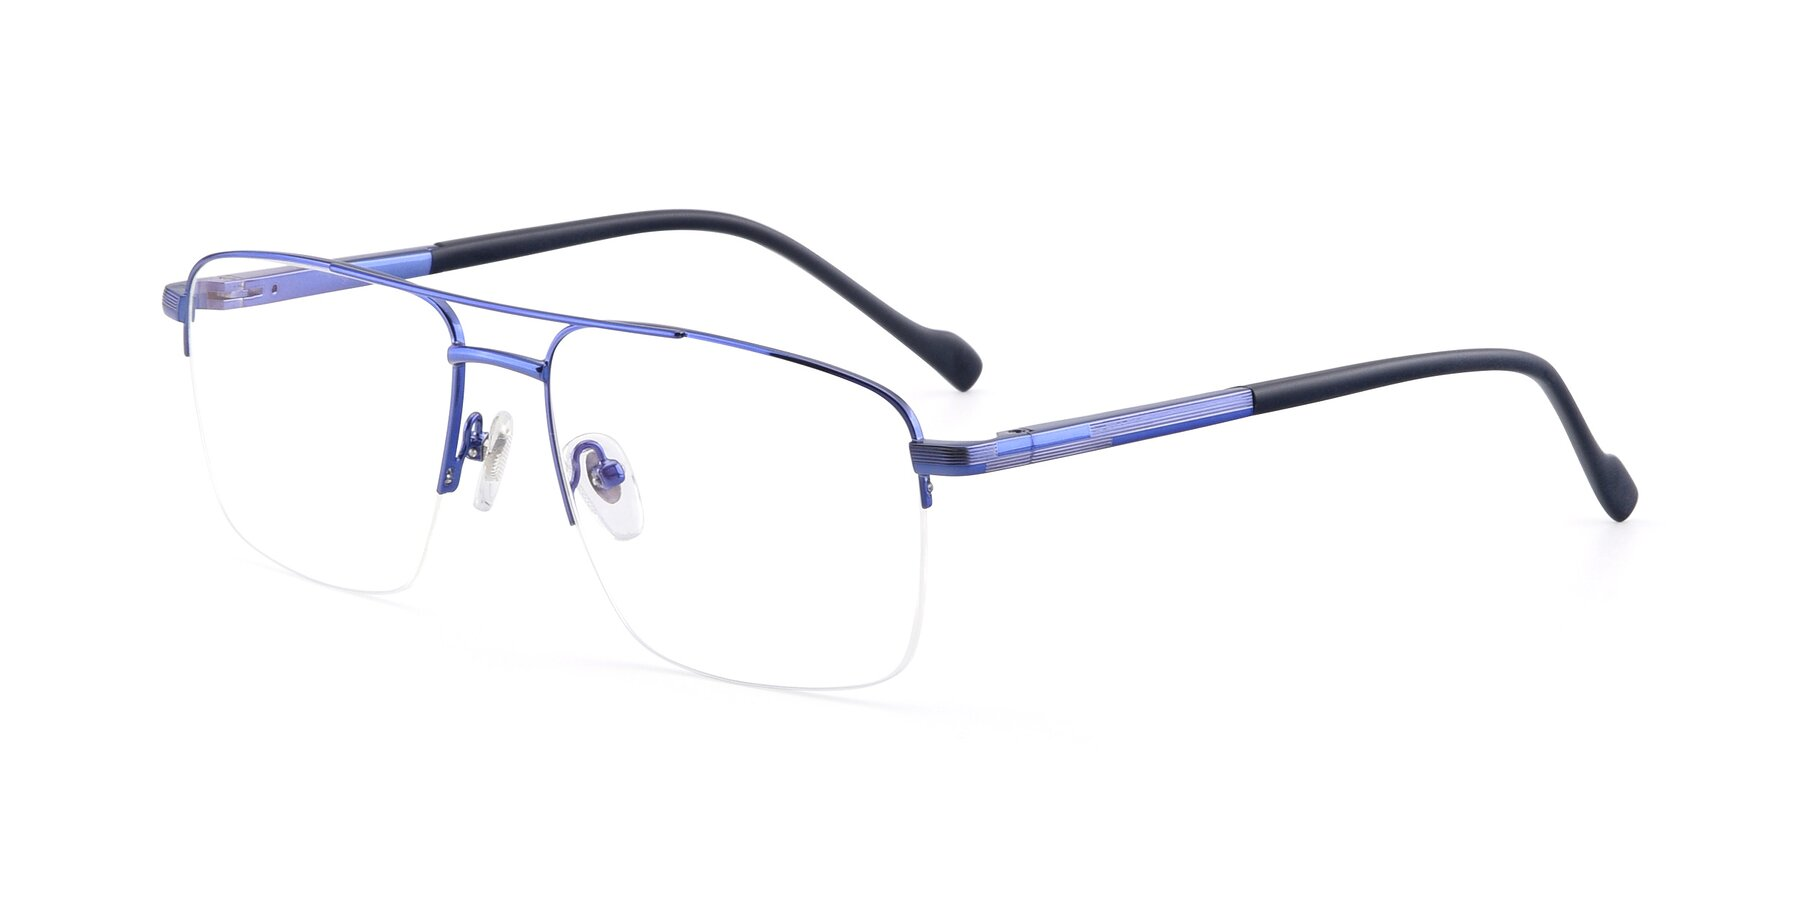 Angle of 19013 in Blue with Clear Blue Light Blocking Lenses